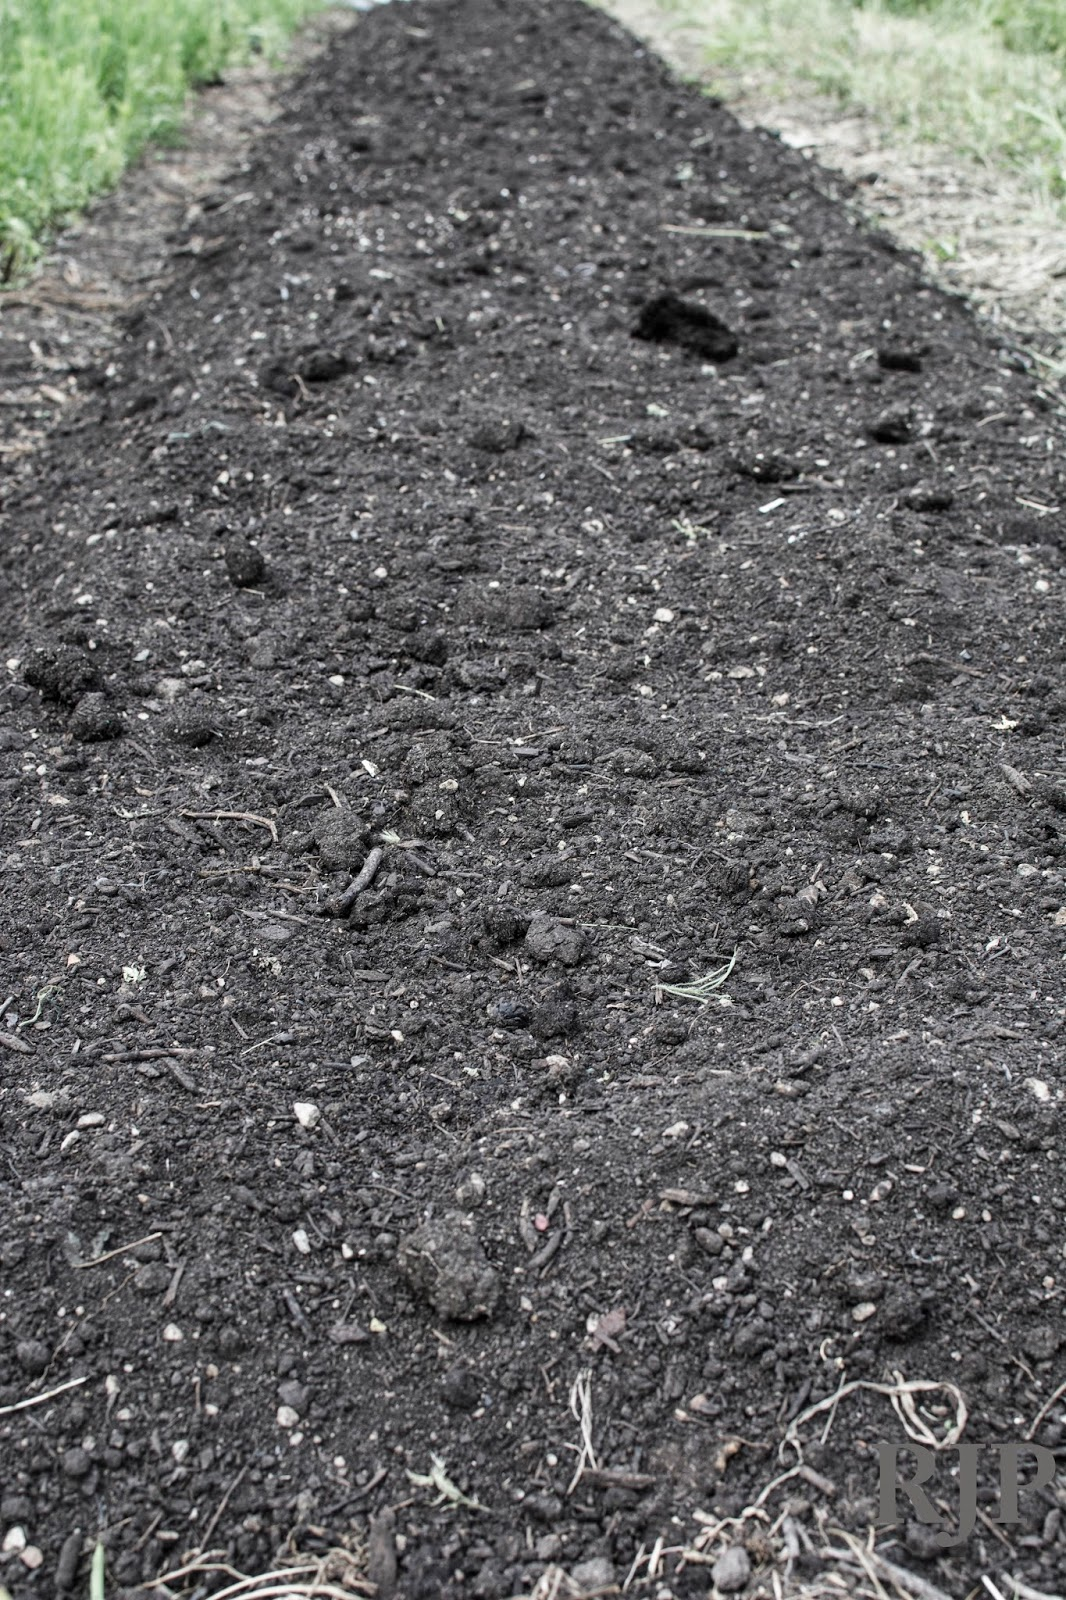 Compost Bed. Photo cred: Reed Petersen